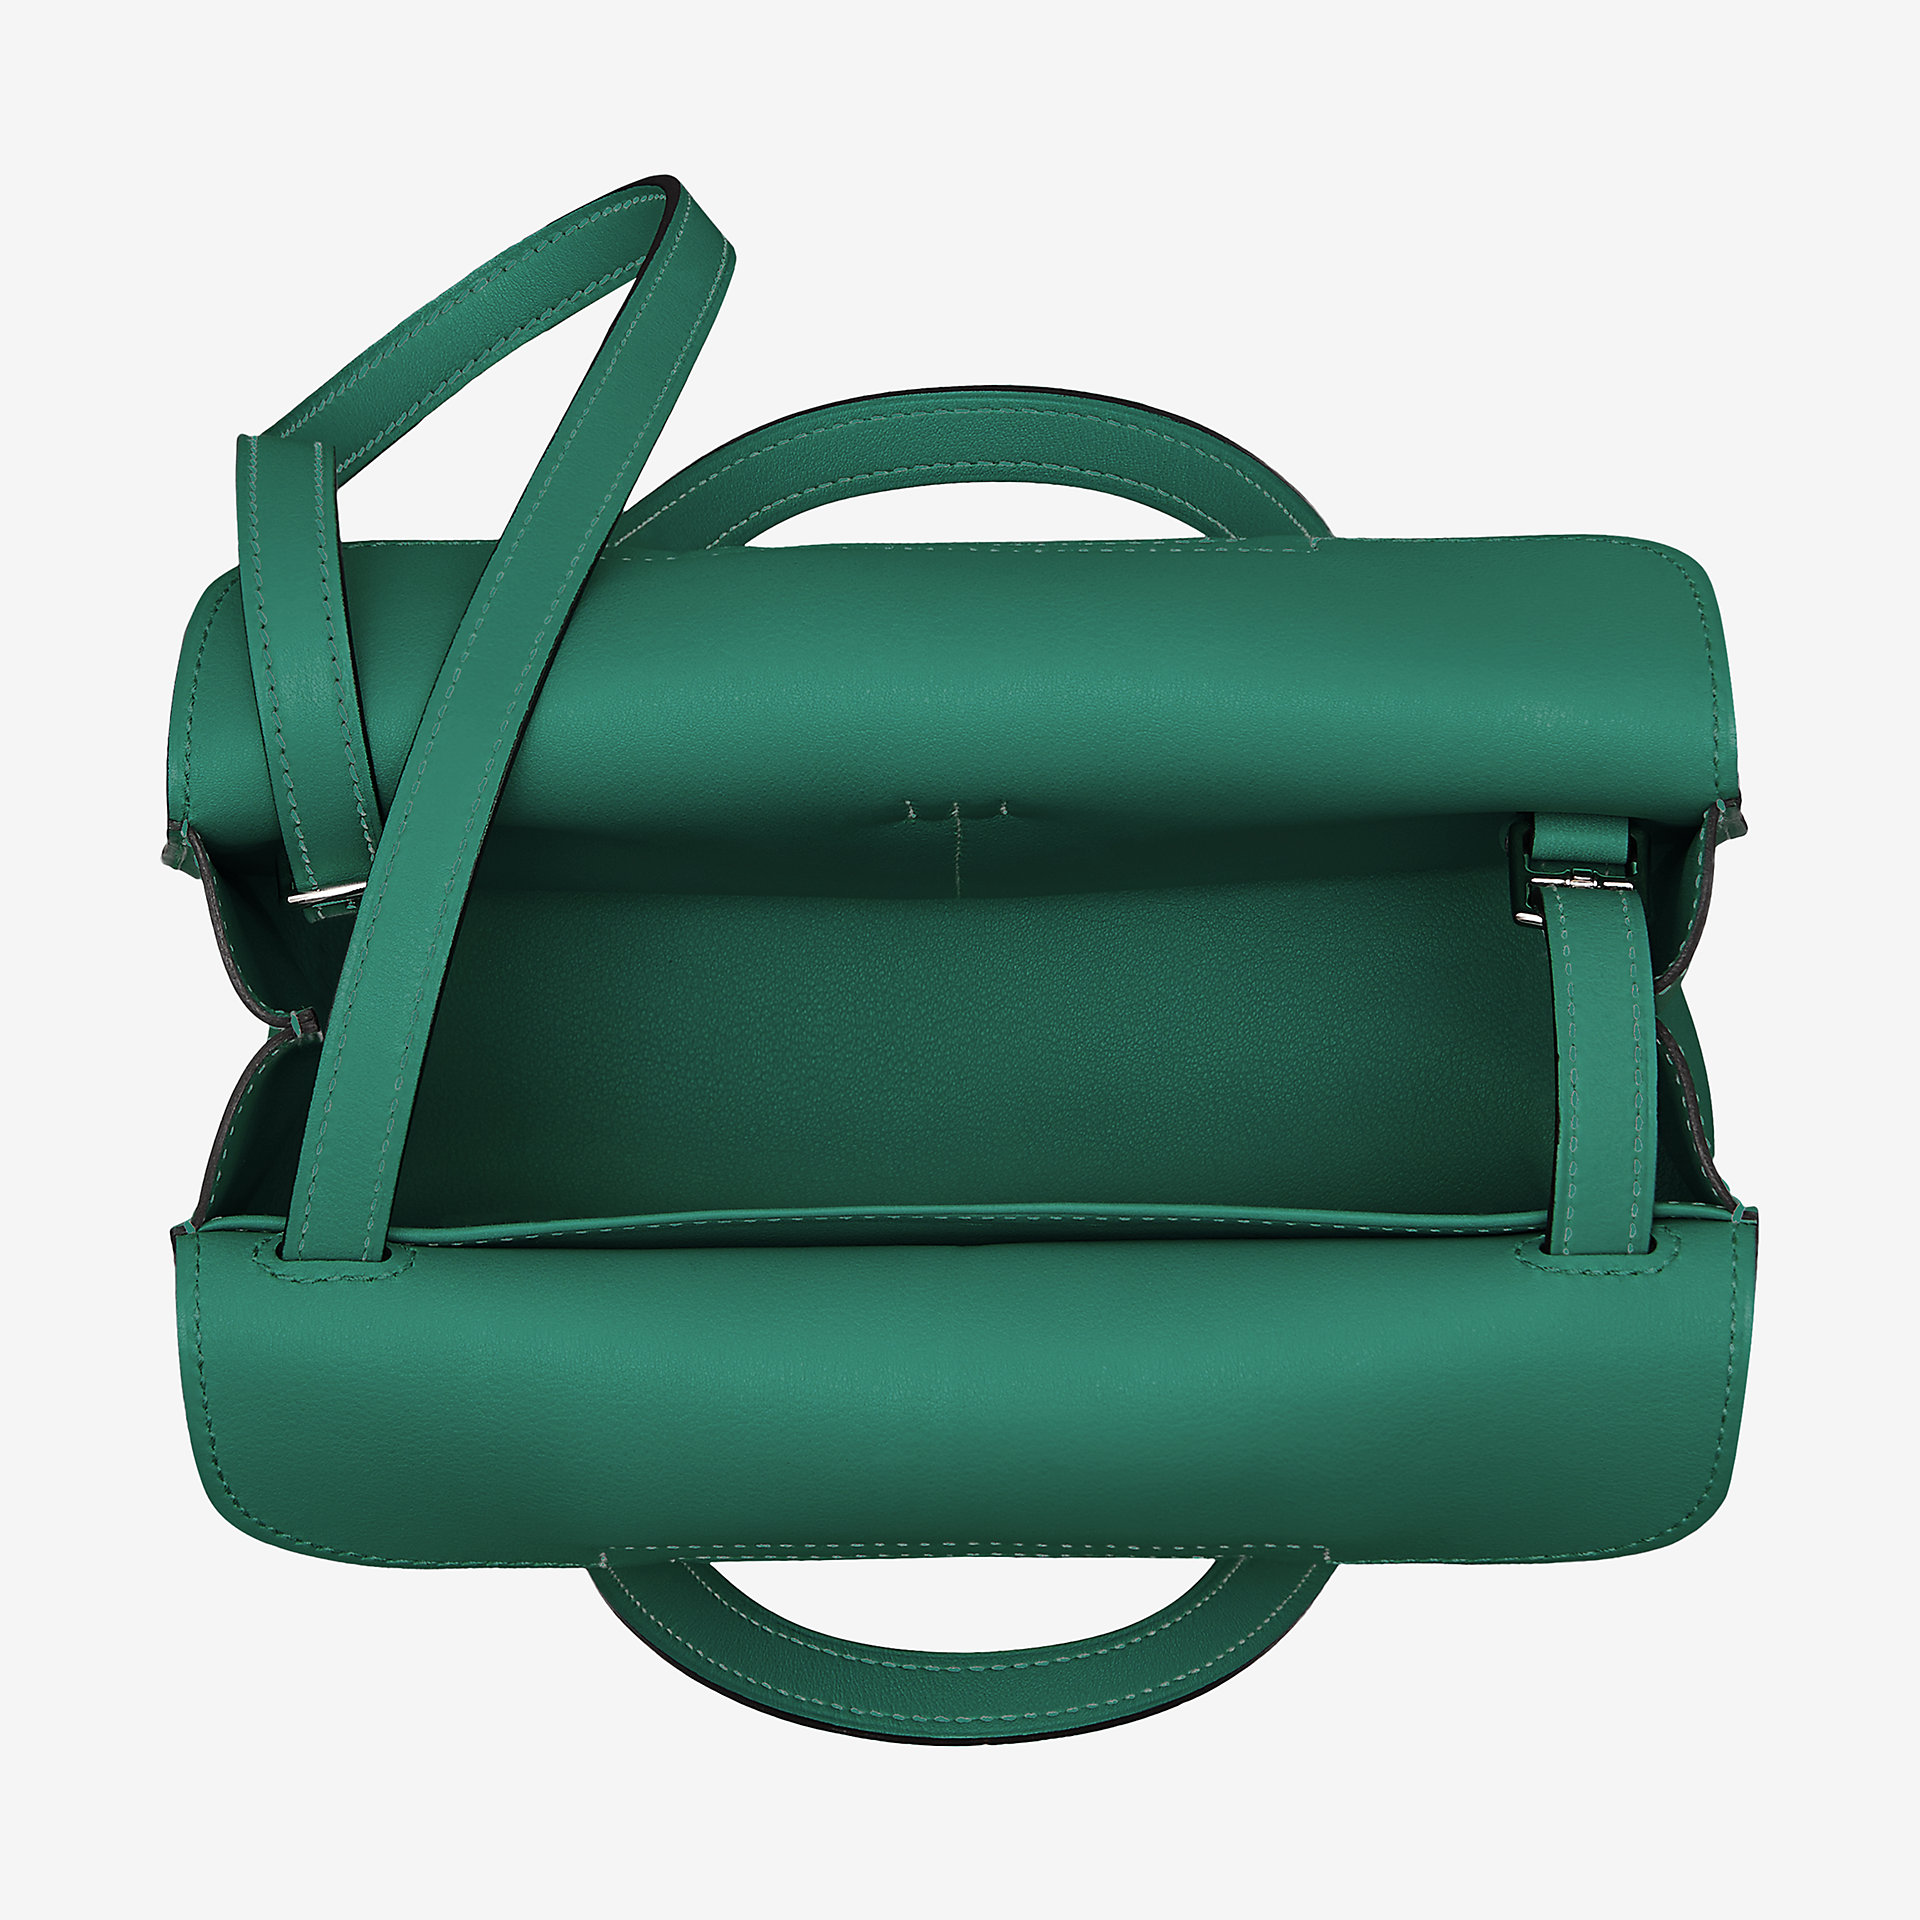 爱马仕Hermes Halzan mini bag malachite 孔雀绿Swift calfskin 小牛皮手提包